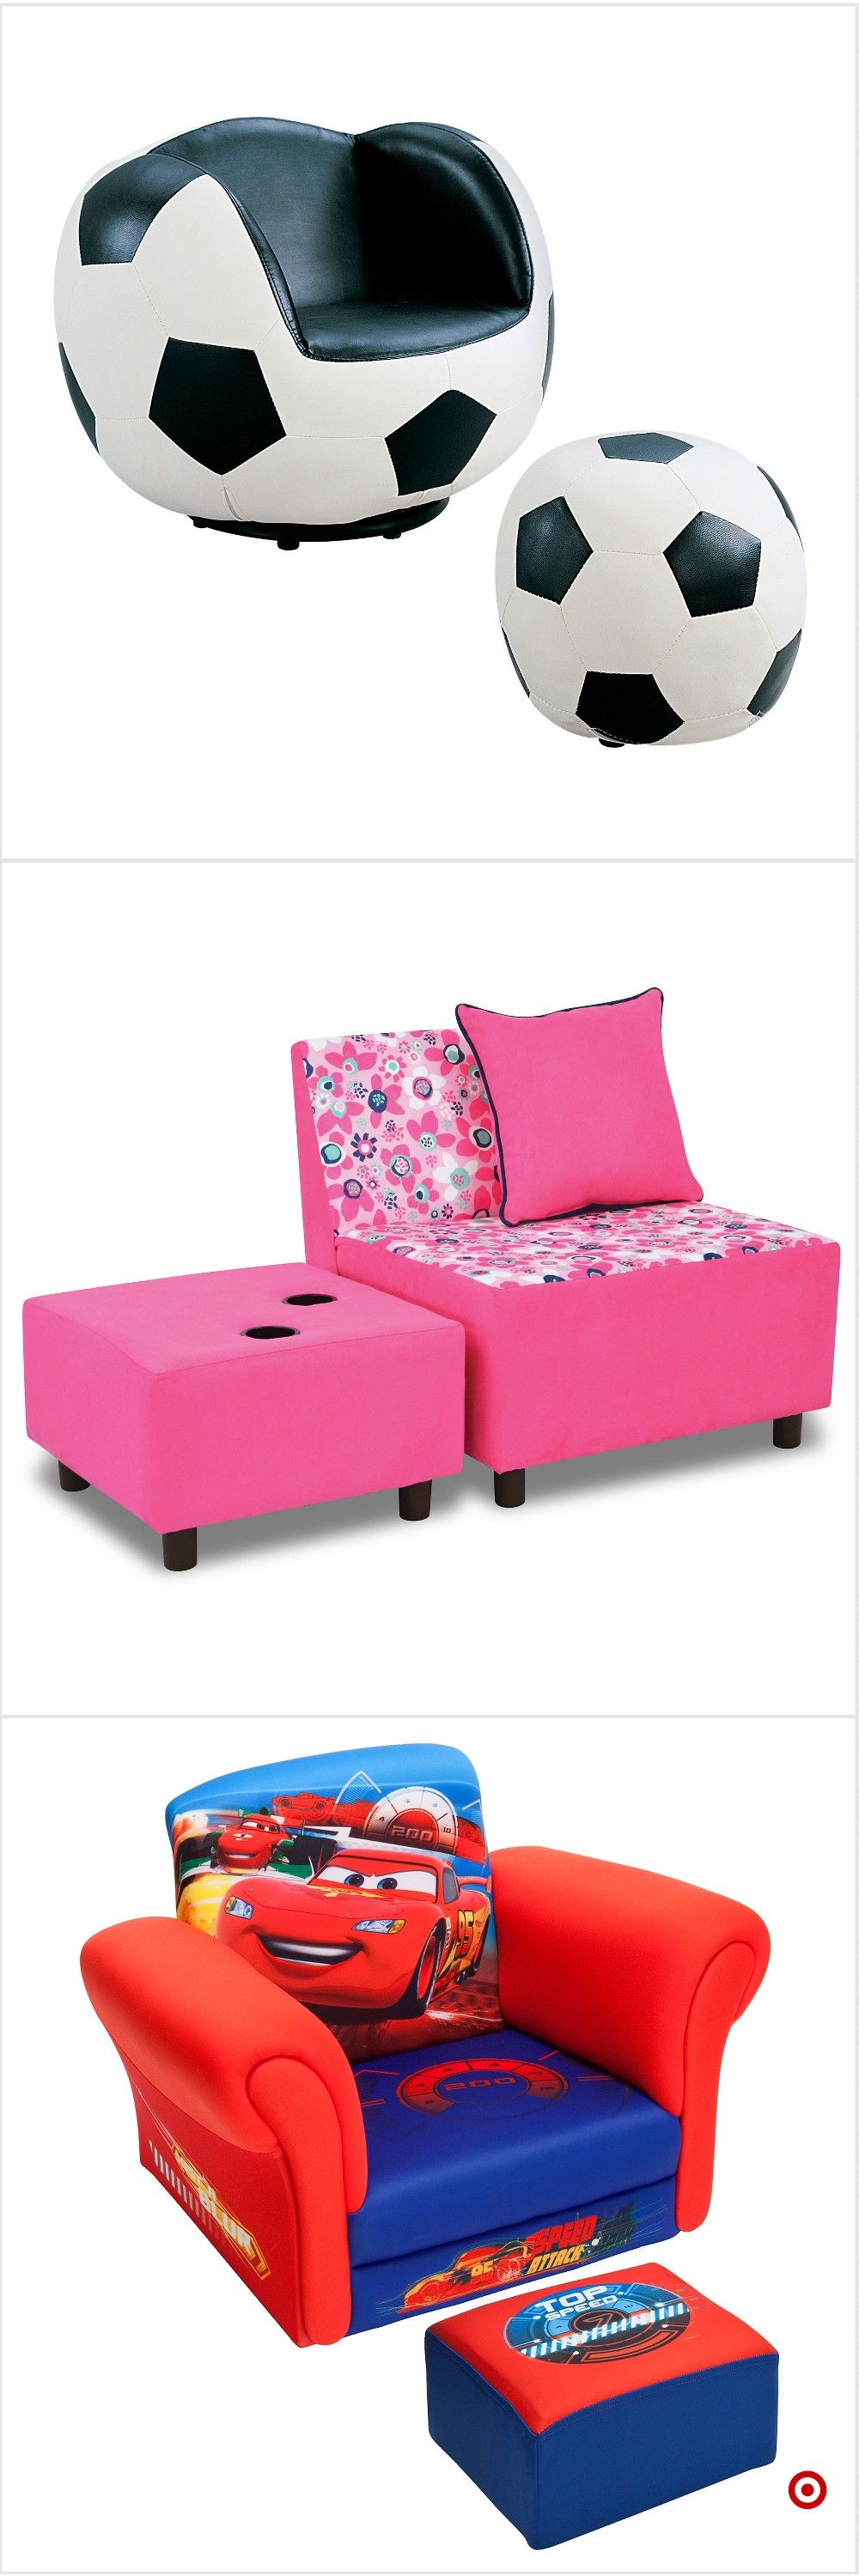 Shop Target for kids upholstered chair and ottoman set you ...